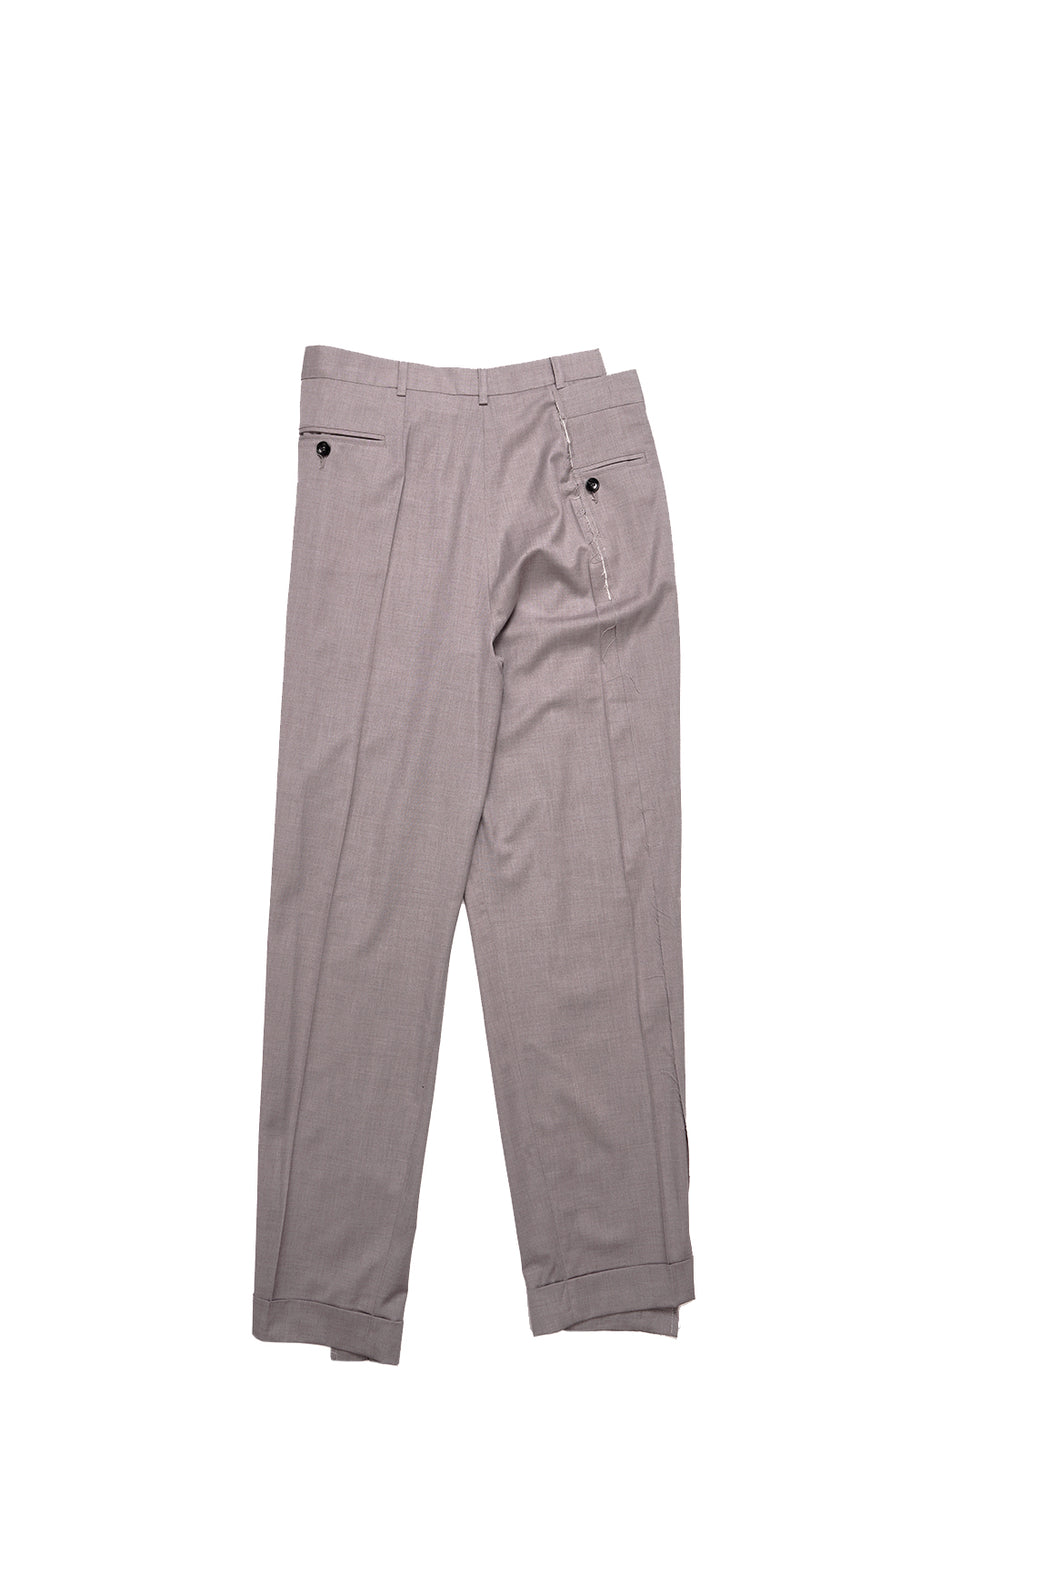 Torn Apart Trousers - Grey